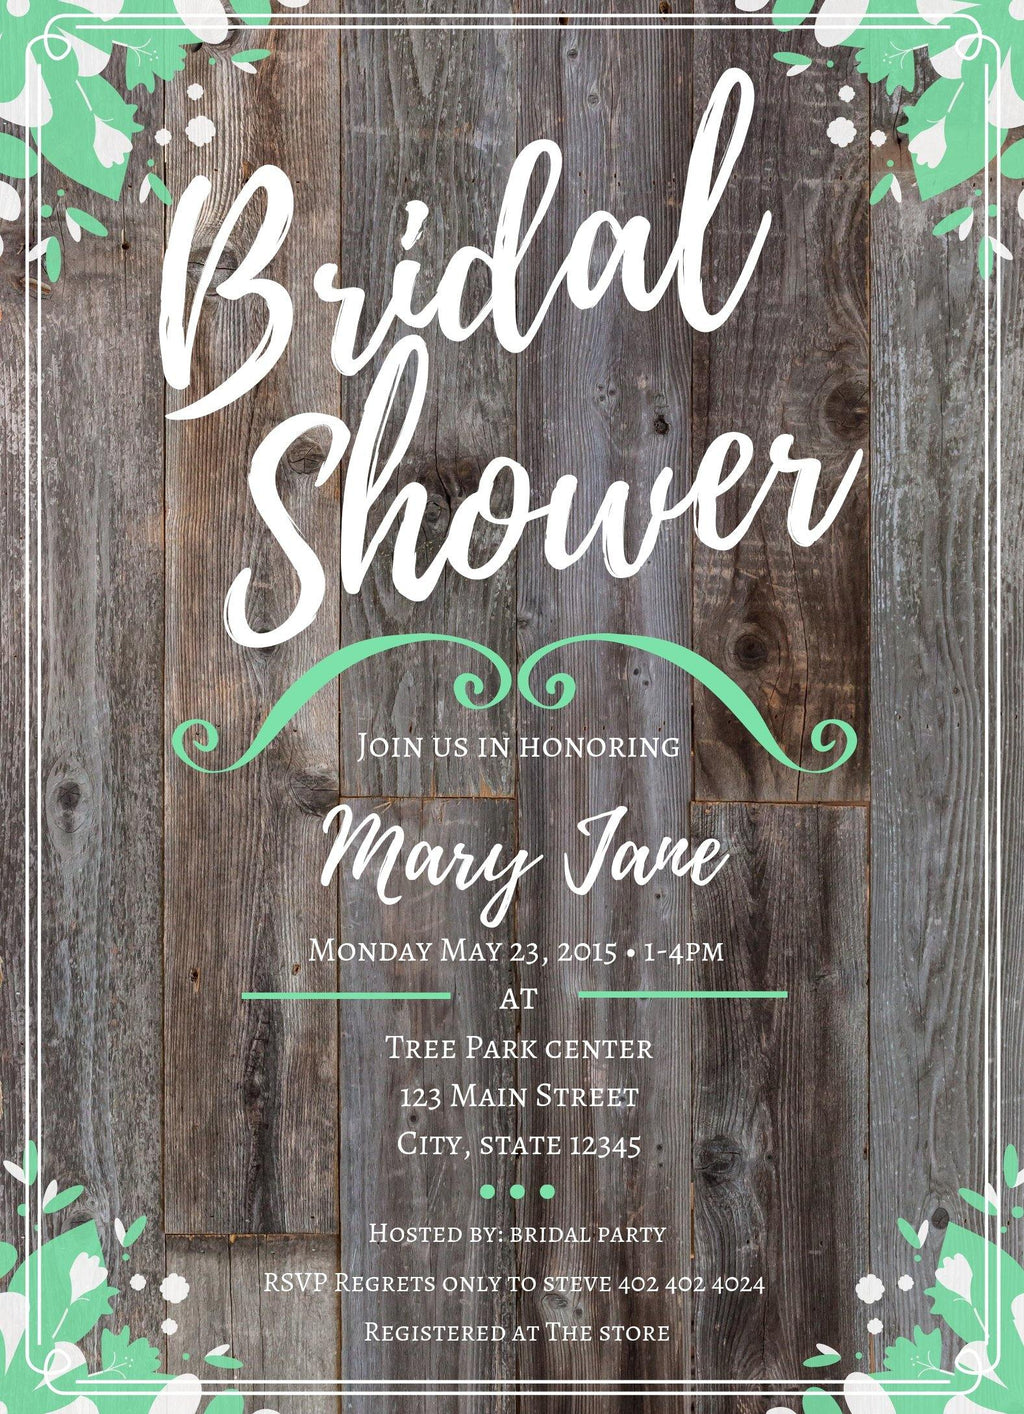 Mint-Green Bridal Shower Invitation Editable Download - sunny-jar-designs